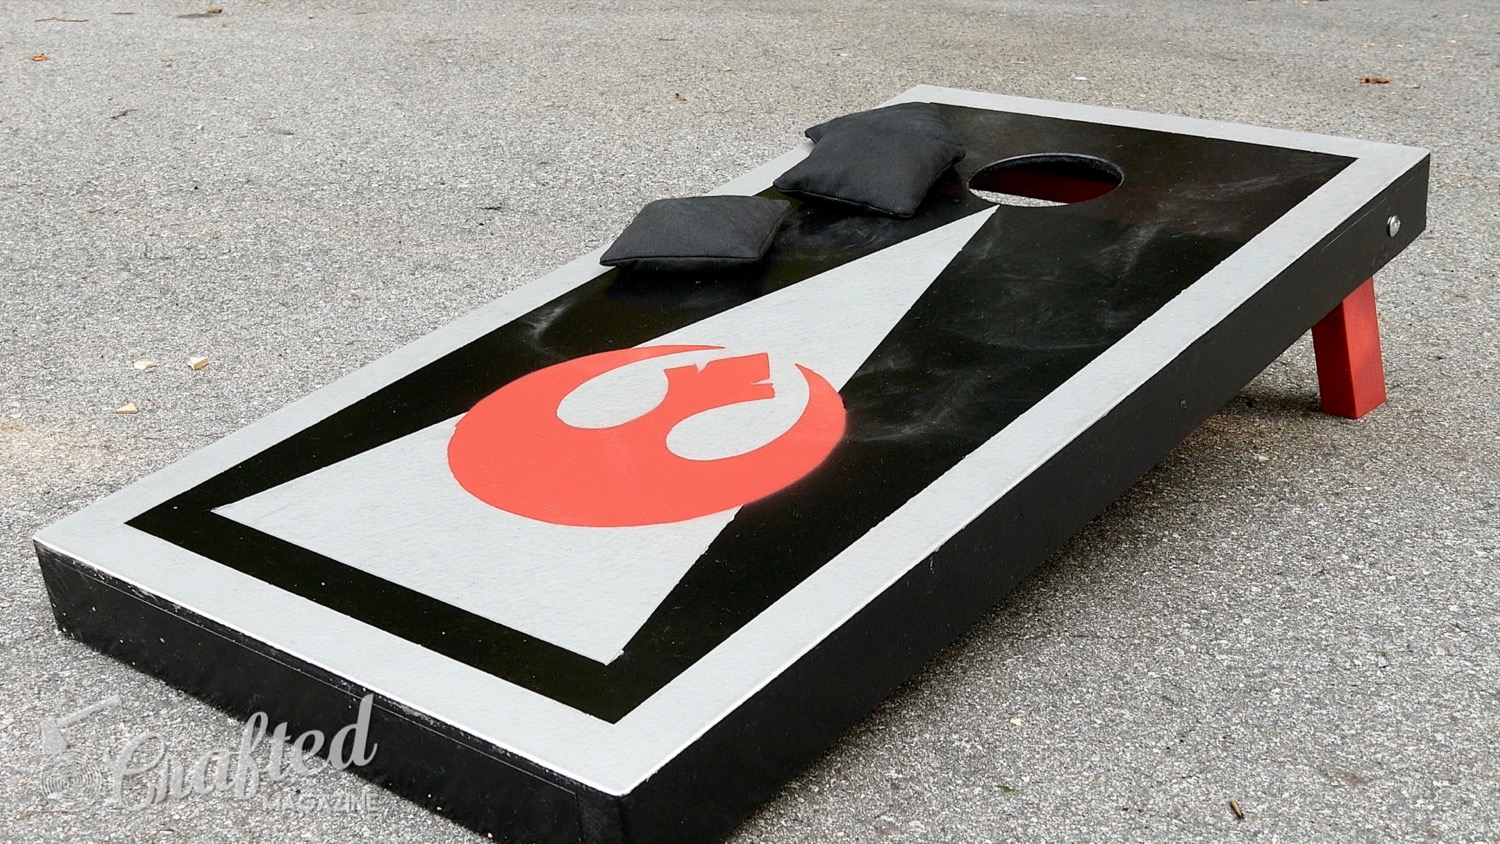 Star-Wars-Cornhole-Boards-How-To-DIY-31.jpg